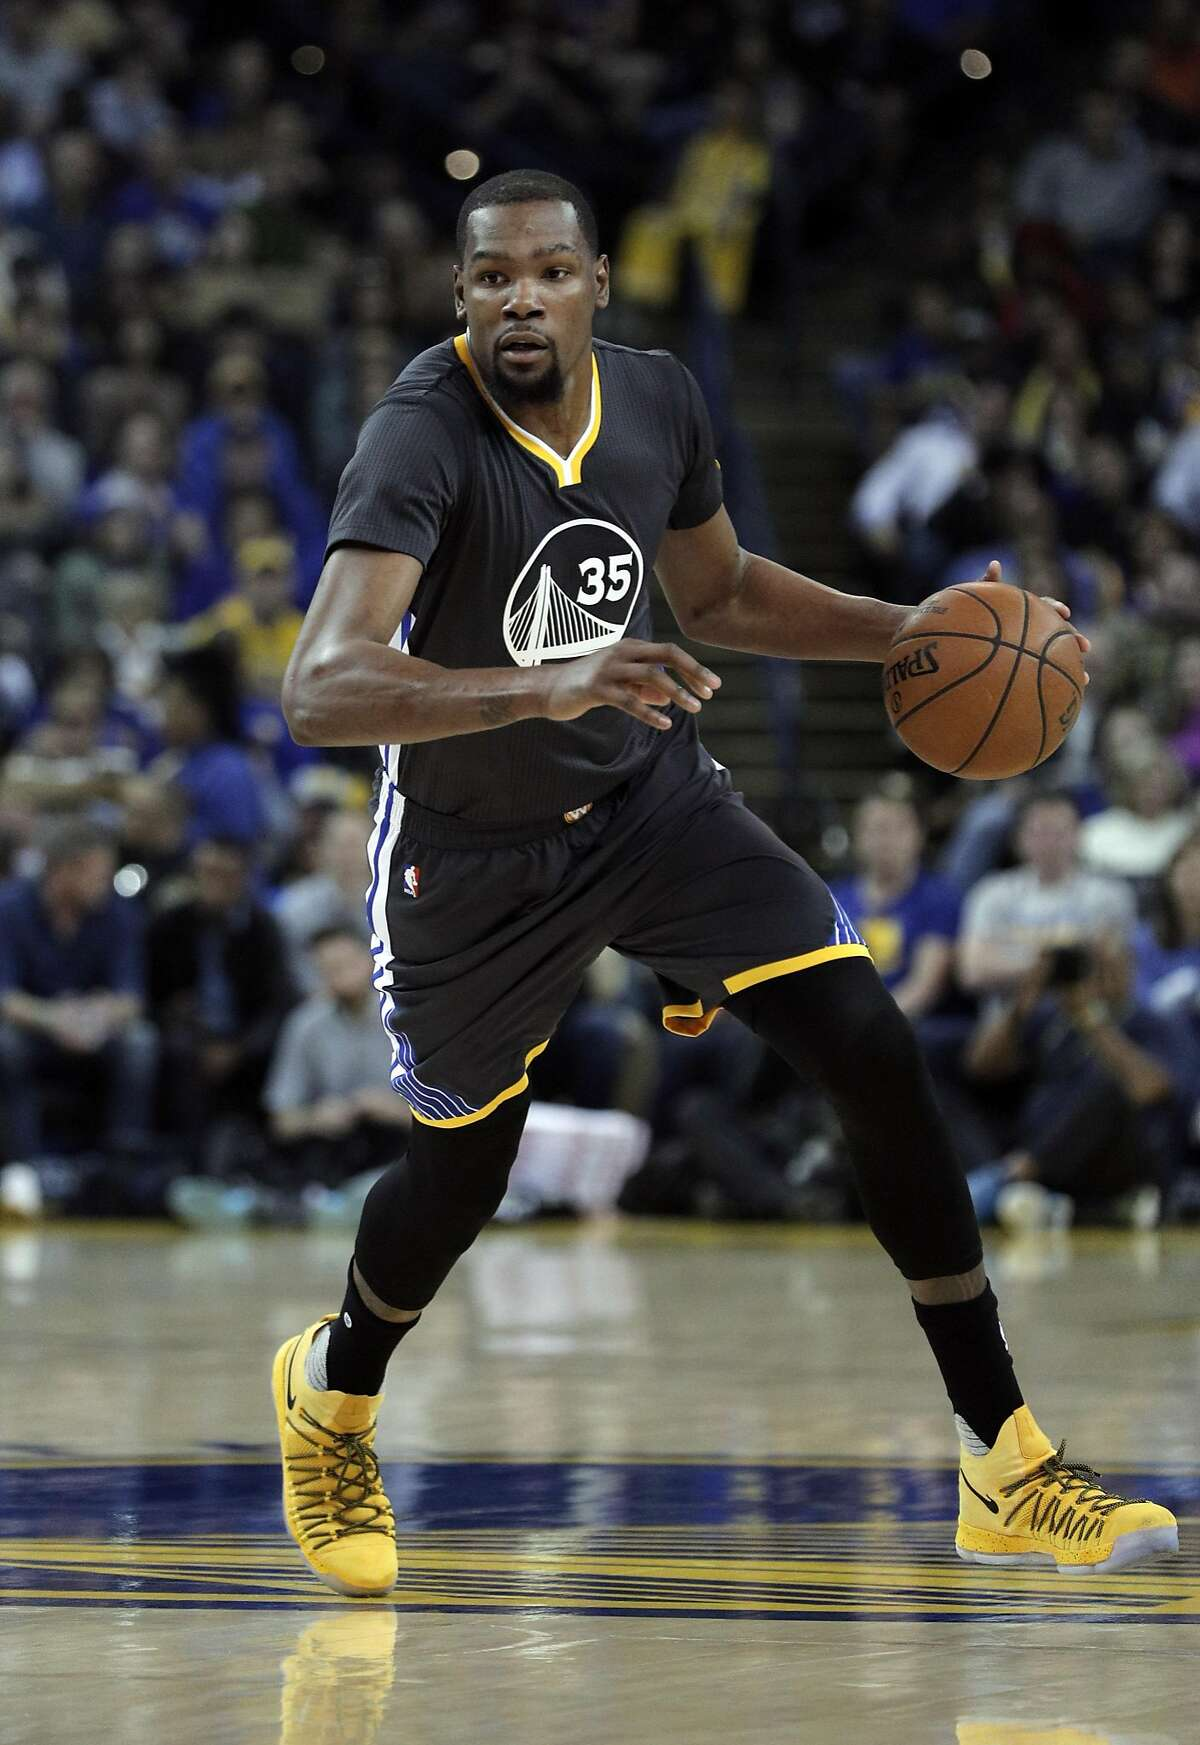 Kevin Durant (35) dribbles up the court in the first half as the Golden State Warriors played the New Orleans Pelicans at Oracle Arena in Oakland, Calif., on Saturday, April 8, 2017.